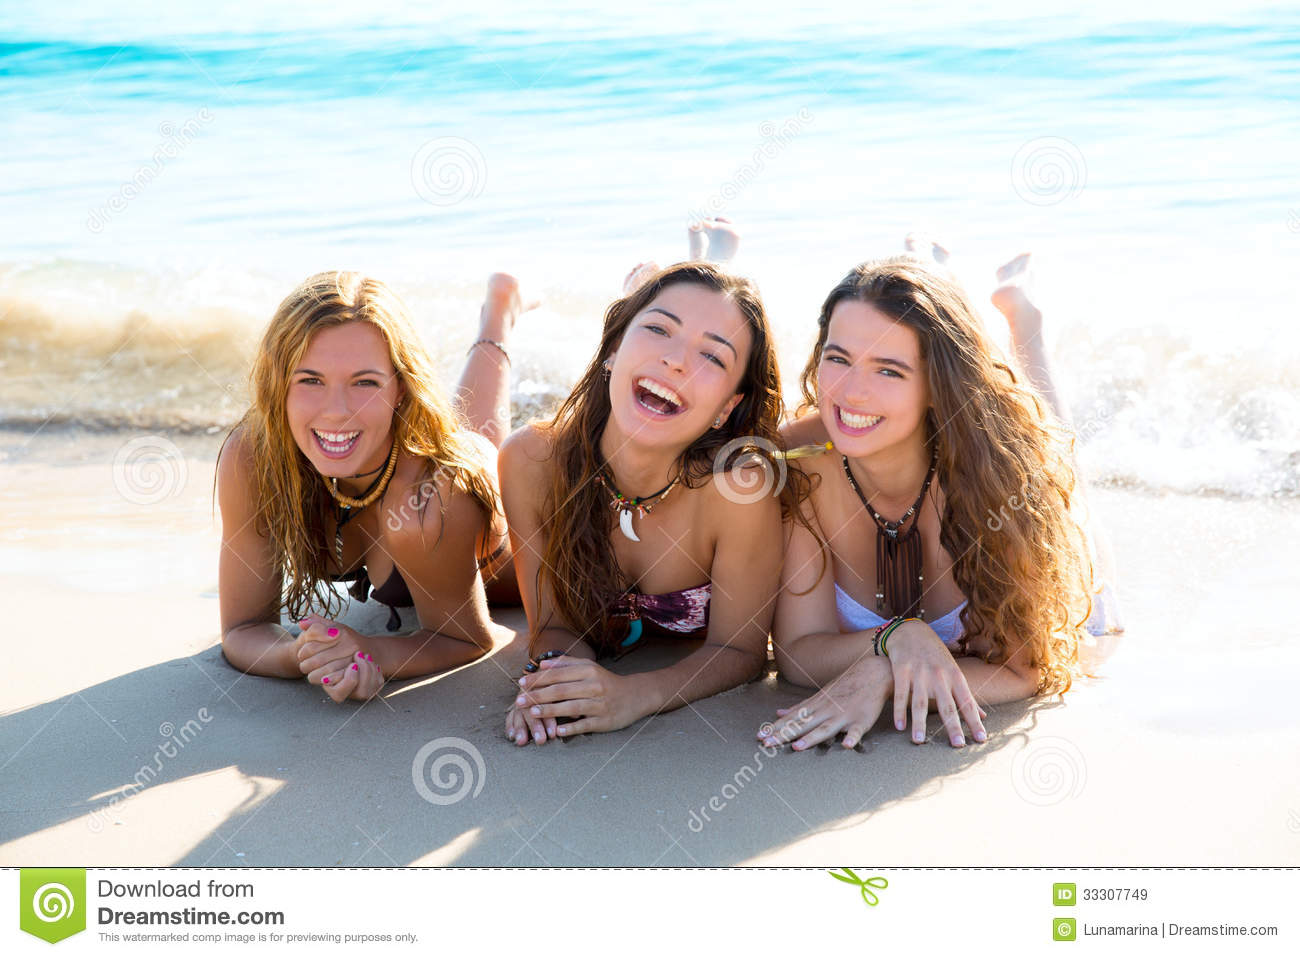 Free picture of beach teen